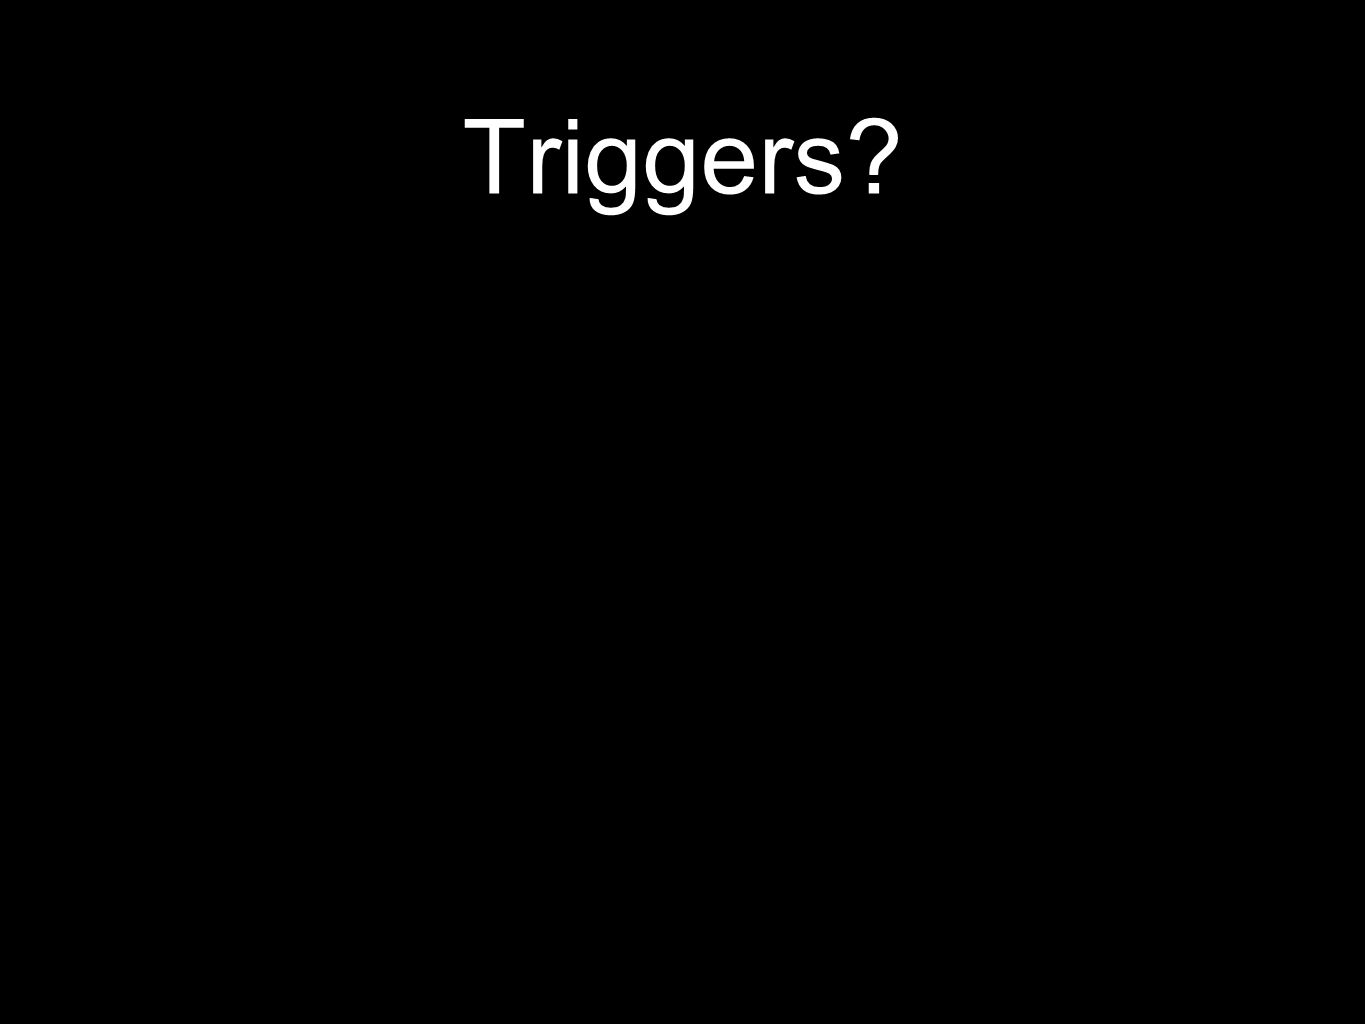 Triggers?